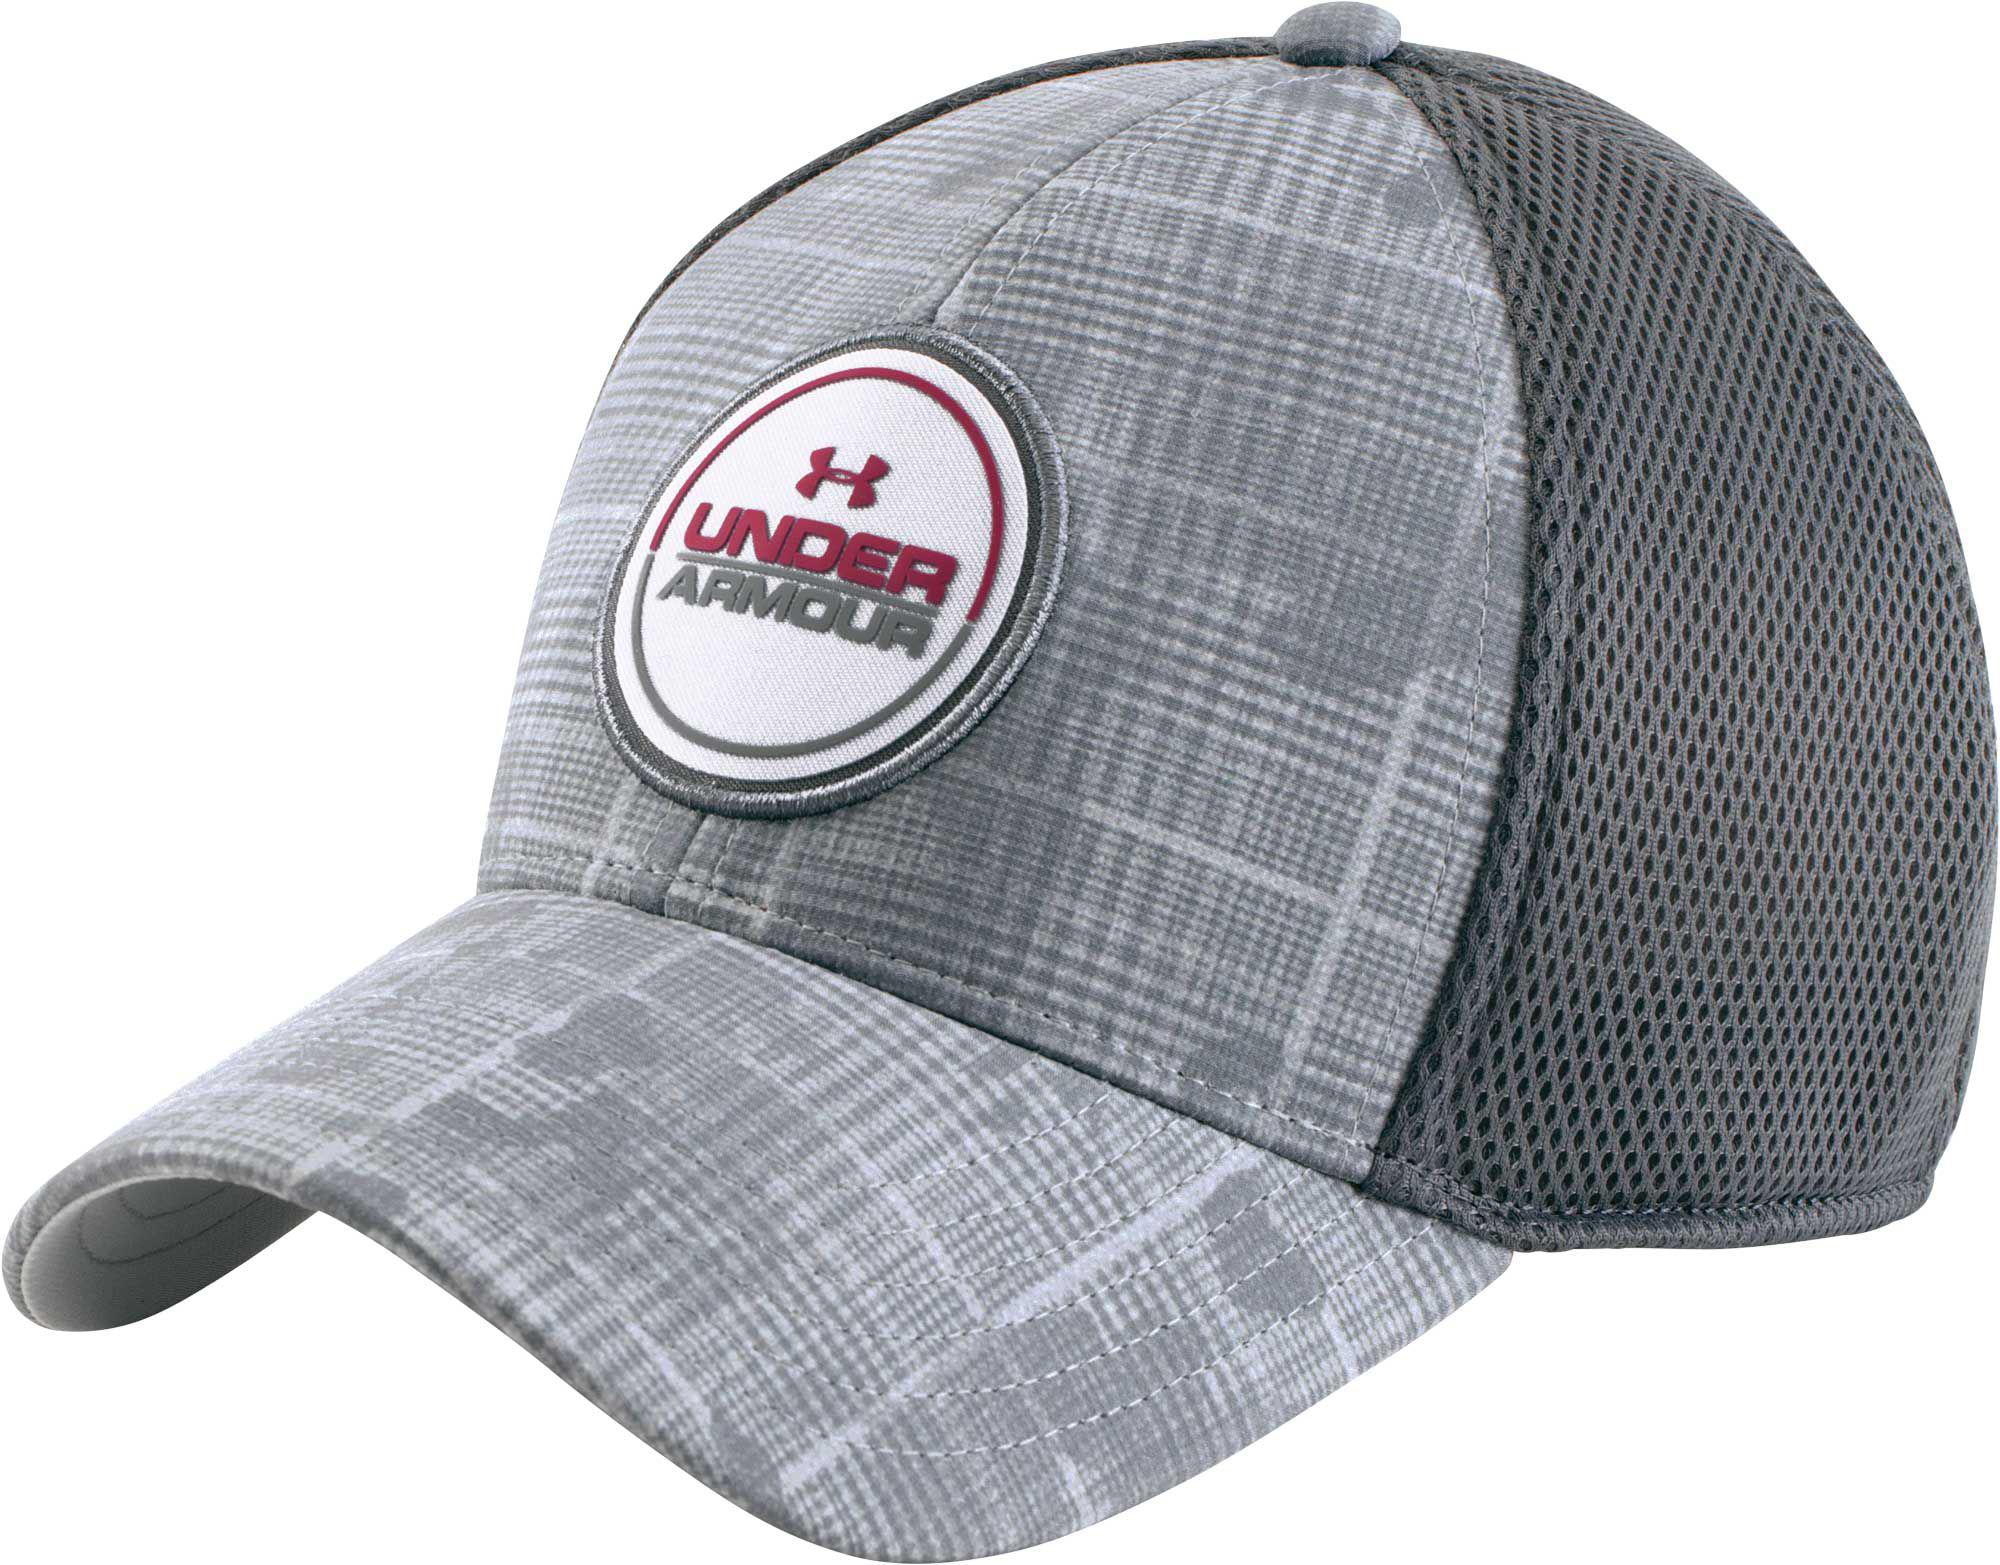 buy popular f1867 69c07 Under Armour Eagle 2.0 Golf Hat in Gray for Men - Lyst